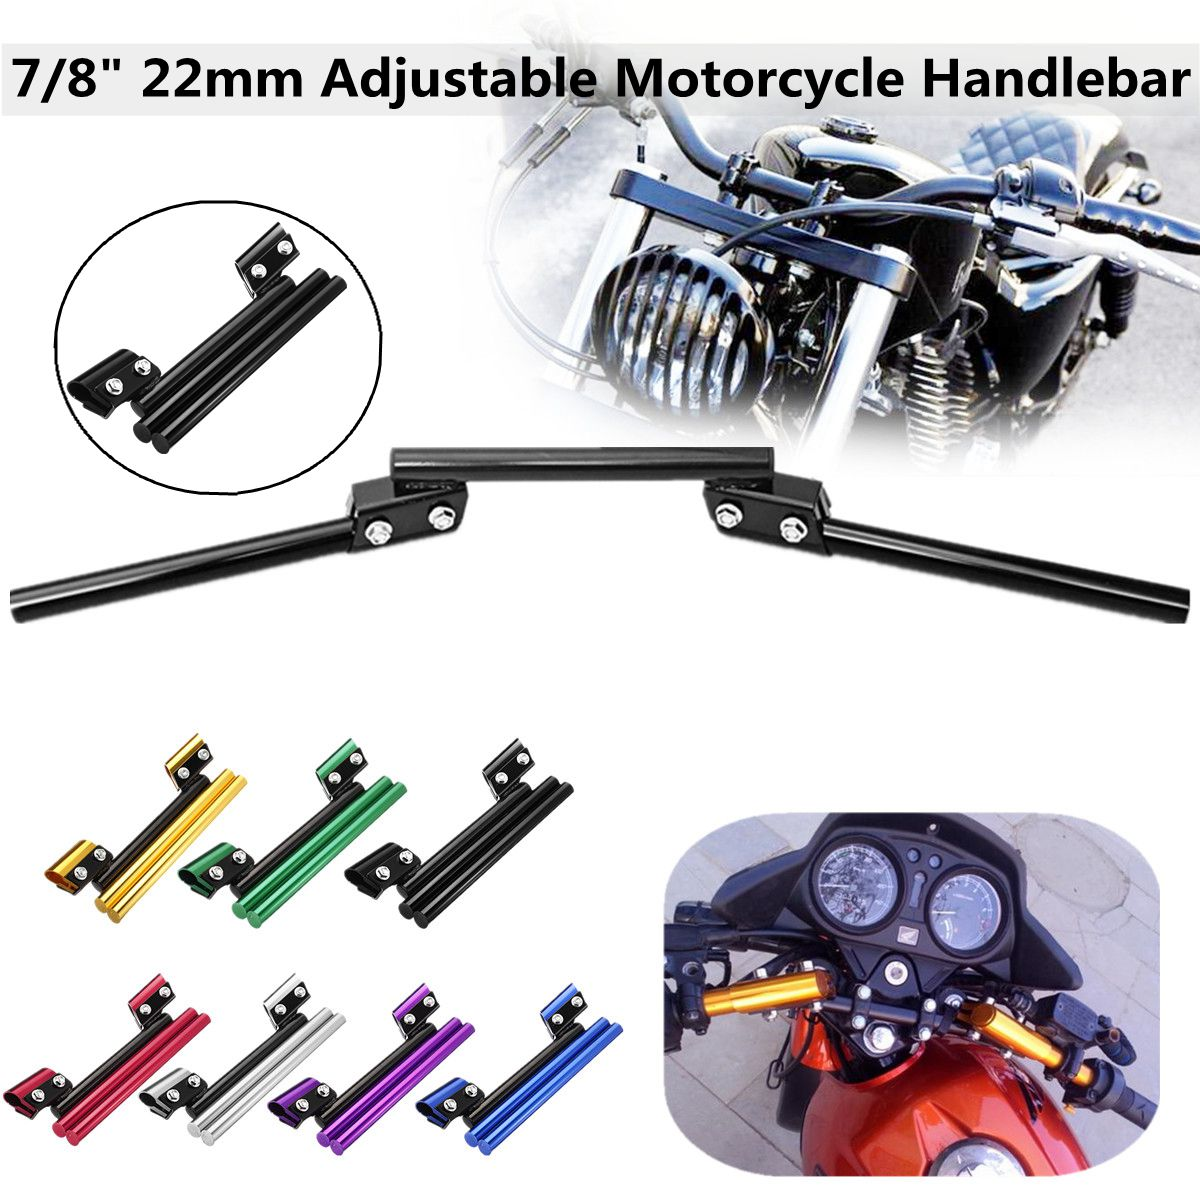 Universal 7/8 / 22mm Motorcycle Handlebars Aluminium Bike Drag Bar Handle Bars for Honda/Suzuki bars брюки 7 8